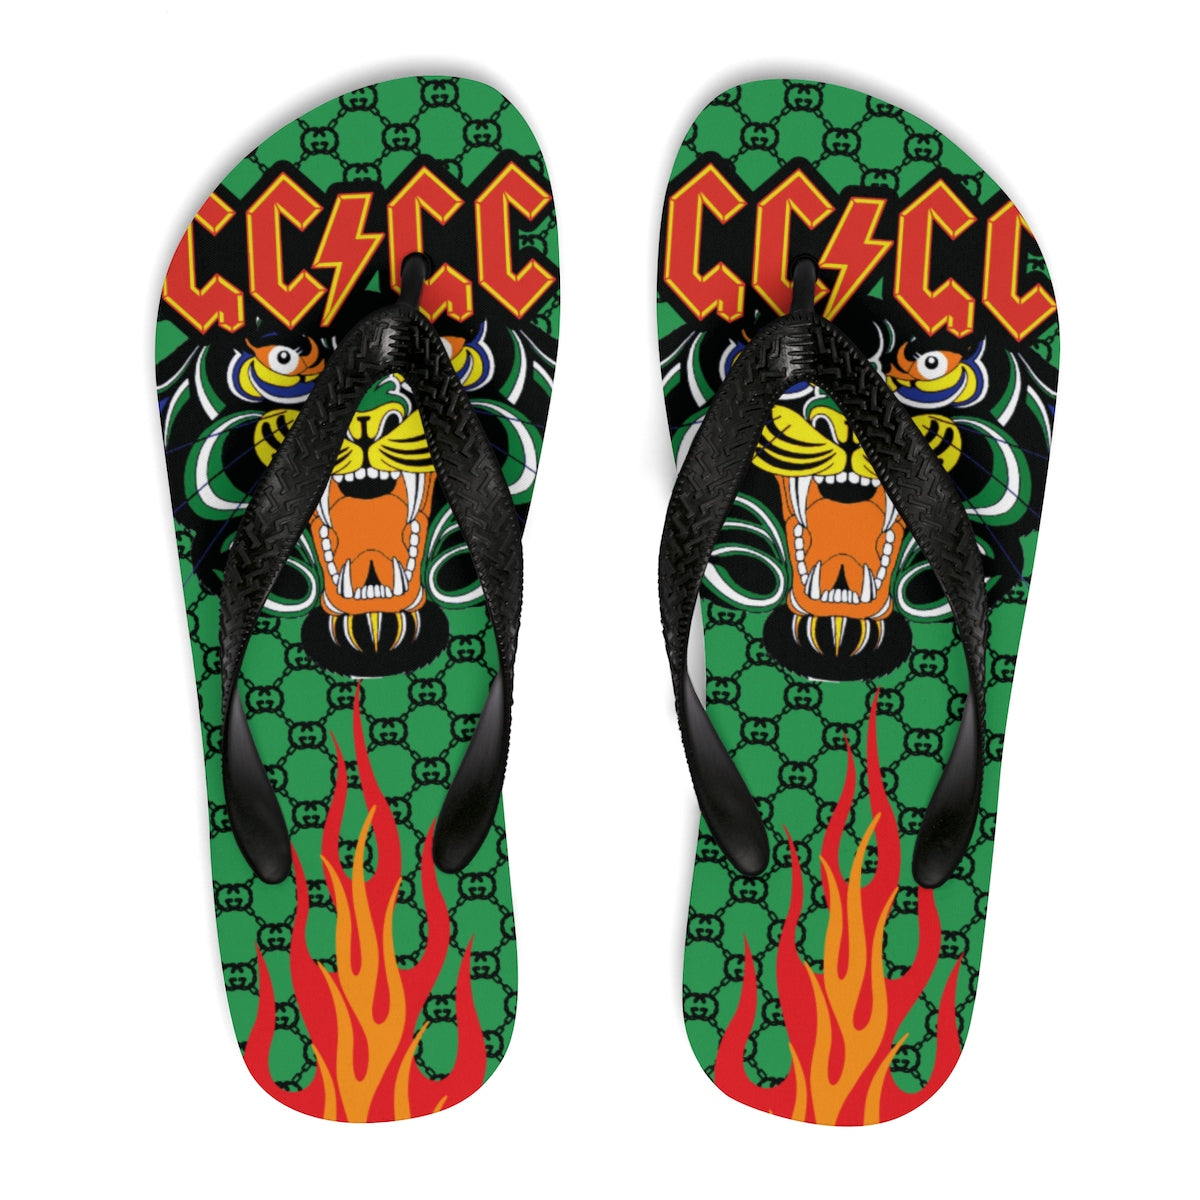 Gucci Inspired Unisex Flip-Flops 8bc6f4b74eac